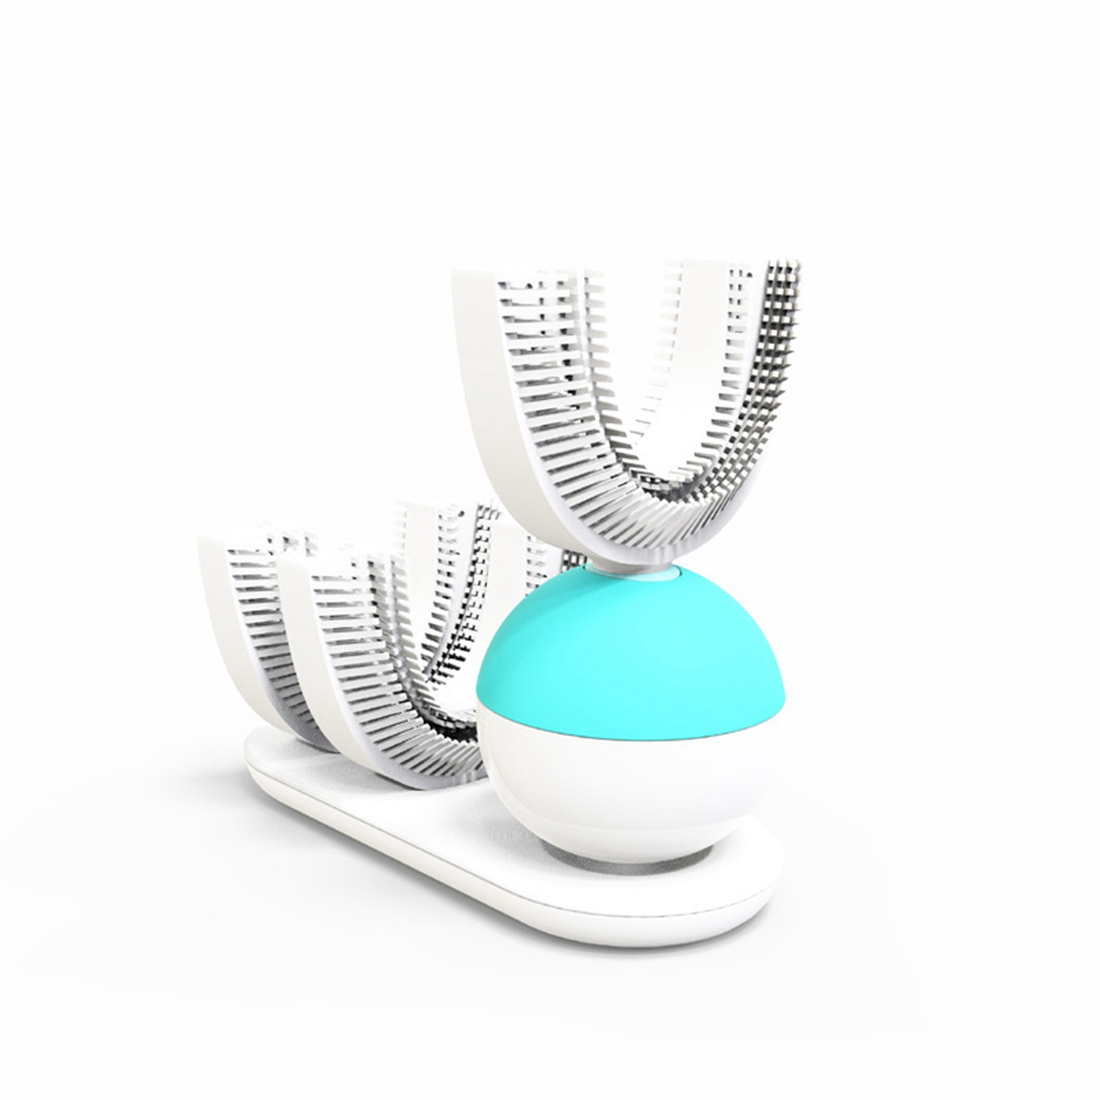 Hot Sale 360 degree automatic intelligent packaged lazy toothbrush electric rapid cleaning sonic whitening rechargeable toothbru image